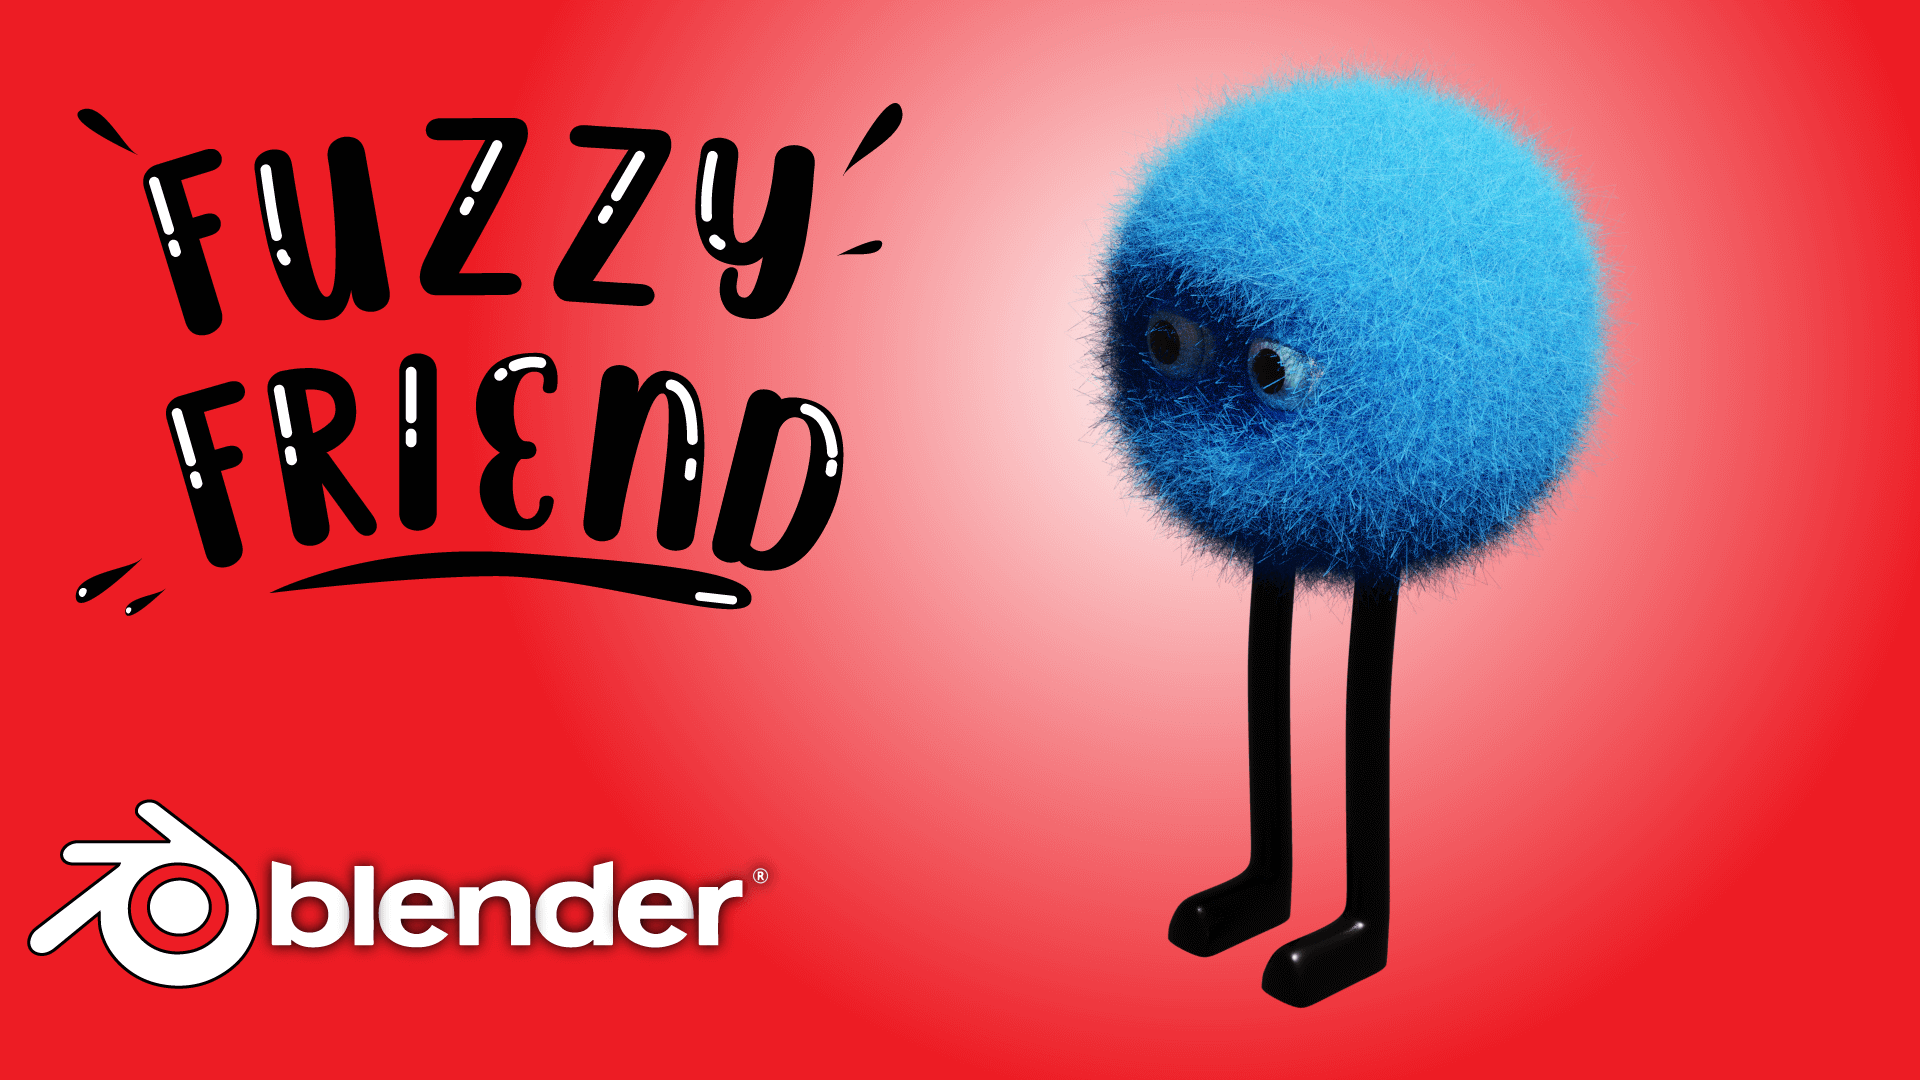 Fuzzy Character 3D Hair Particles Blender Course Academy